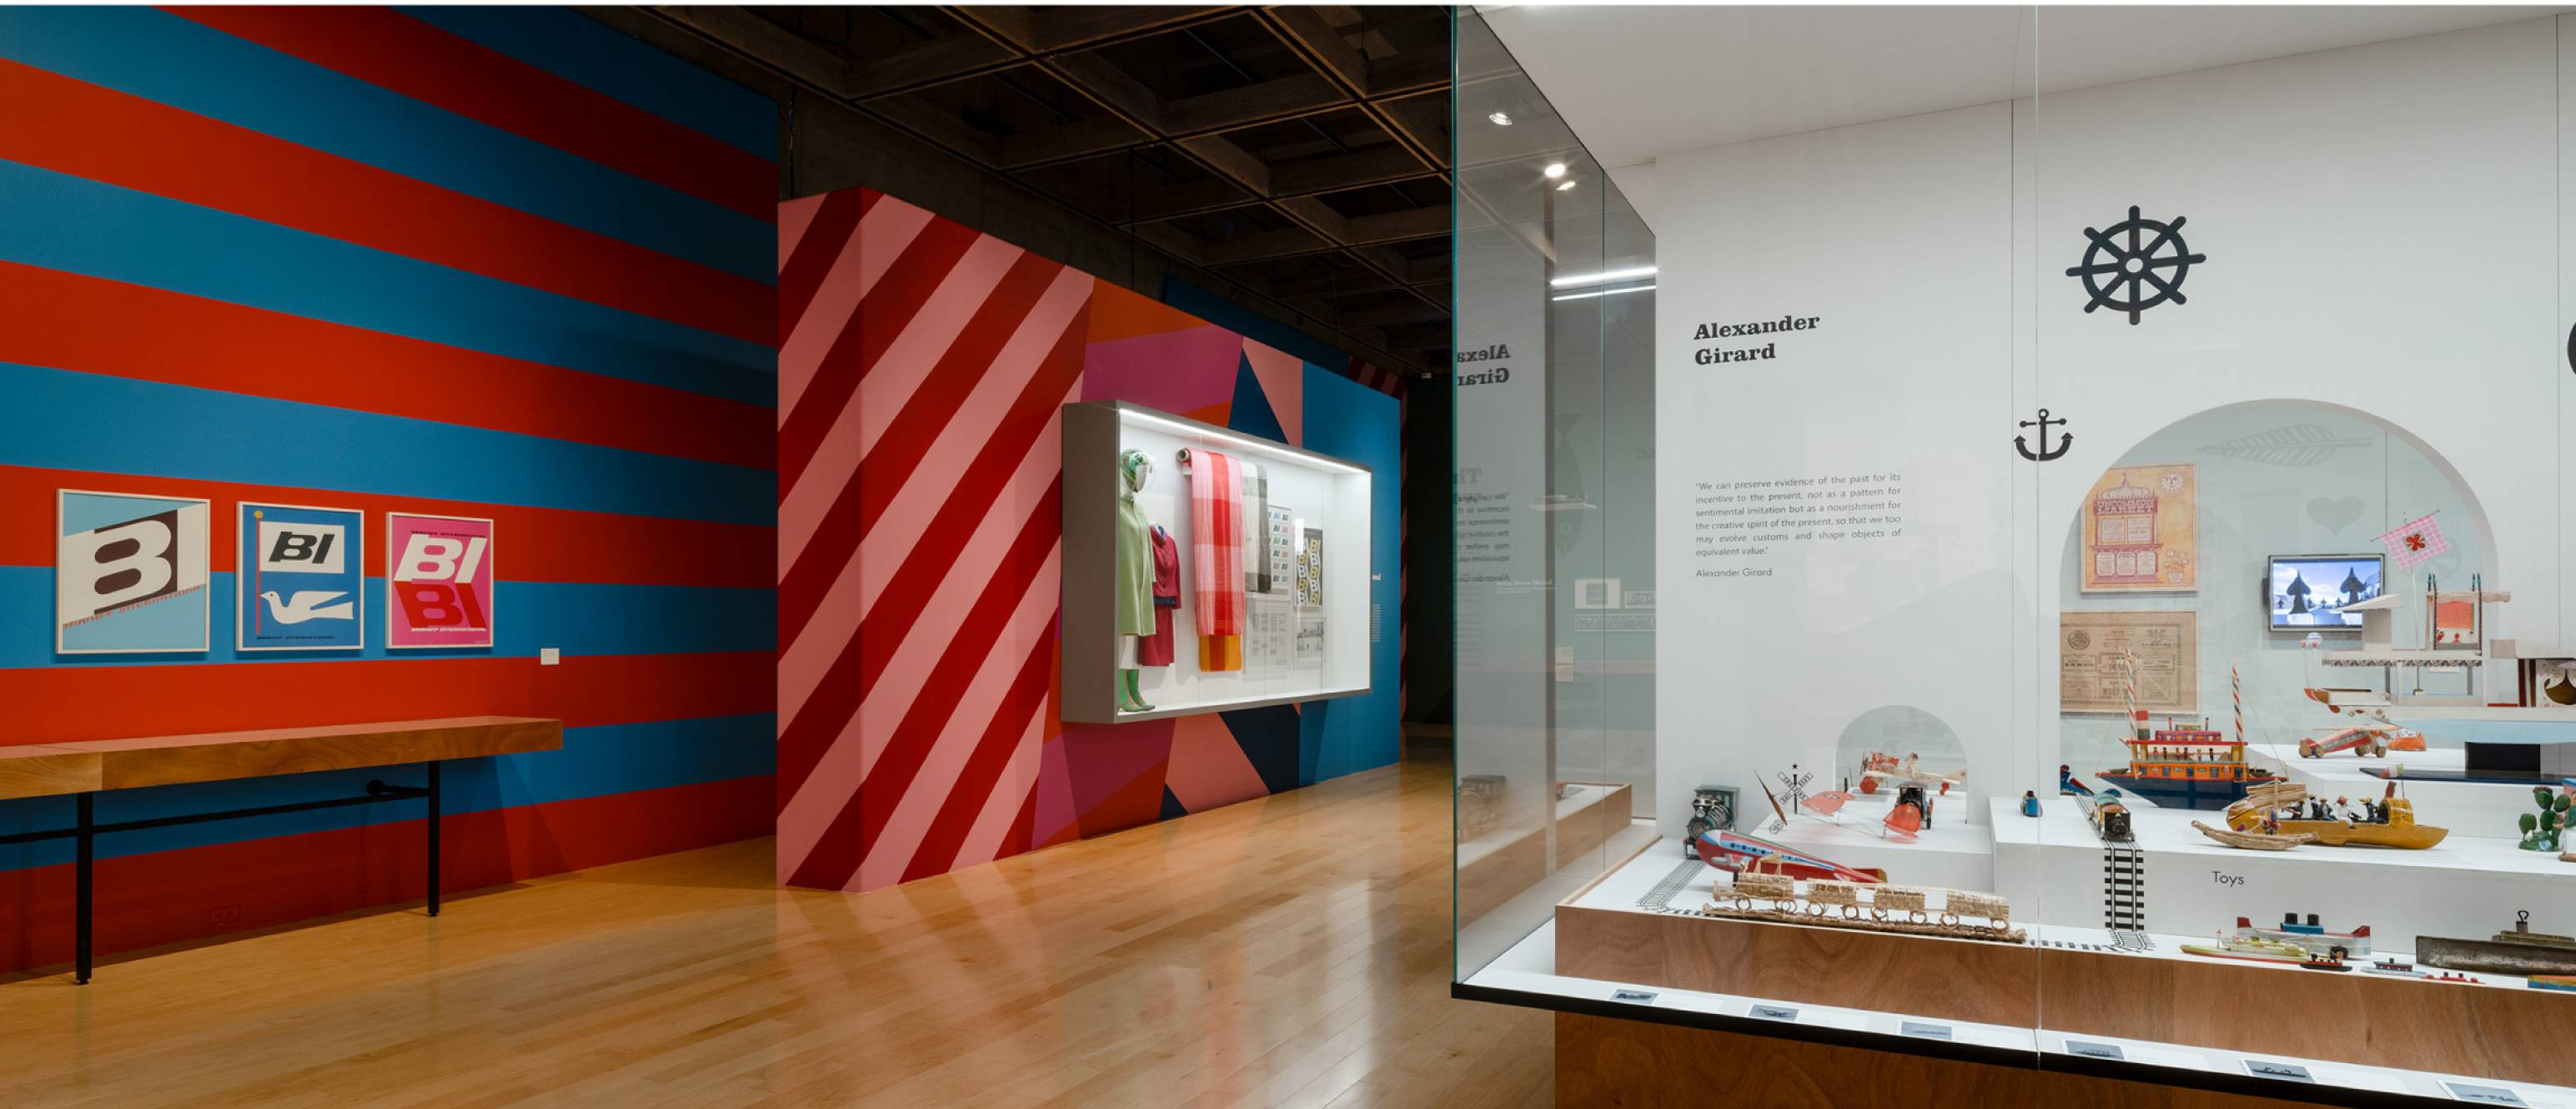 Alexander Girard exhibition, Braniff designs and Folk art collection